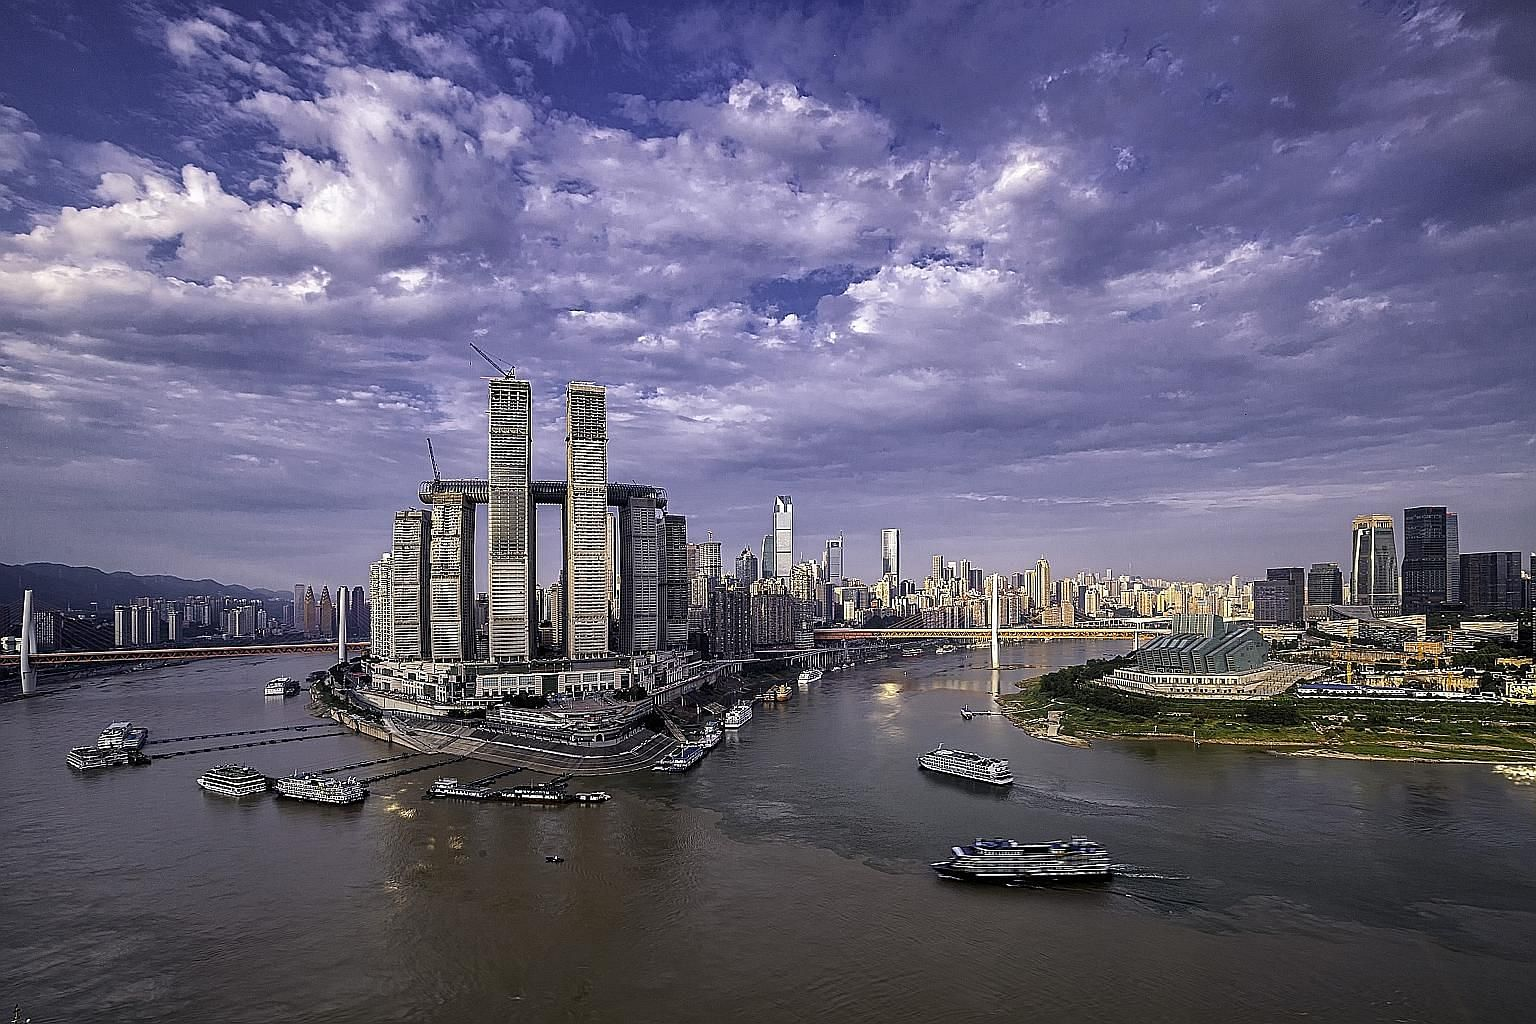 CapitaLand's mega-mall, part of the Raffles City Chongqing complex, is expected to open in September. The project is on the historic Chaotianmen site where the Jialing River meets the Yangtze River. PHOTO: CAPITALAND